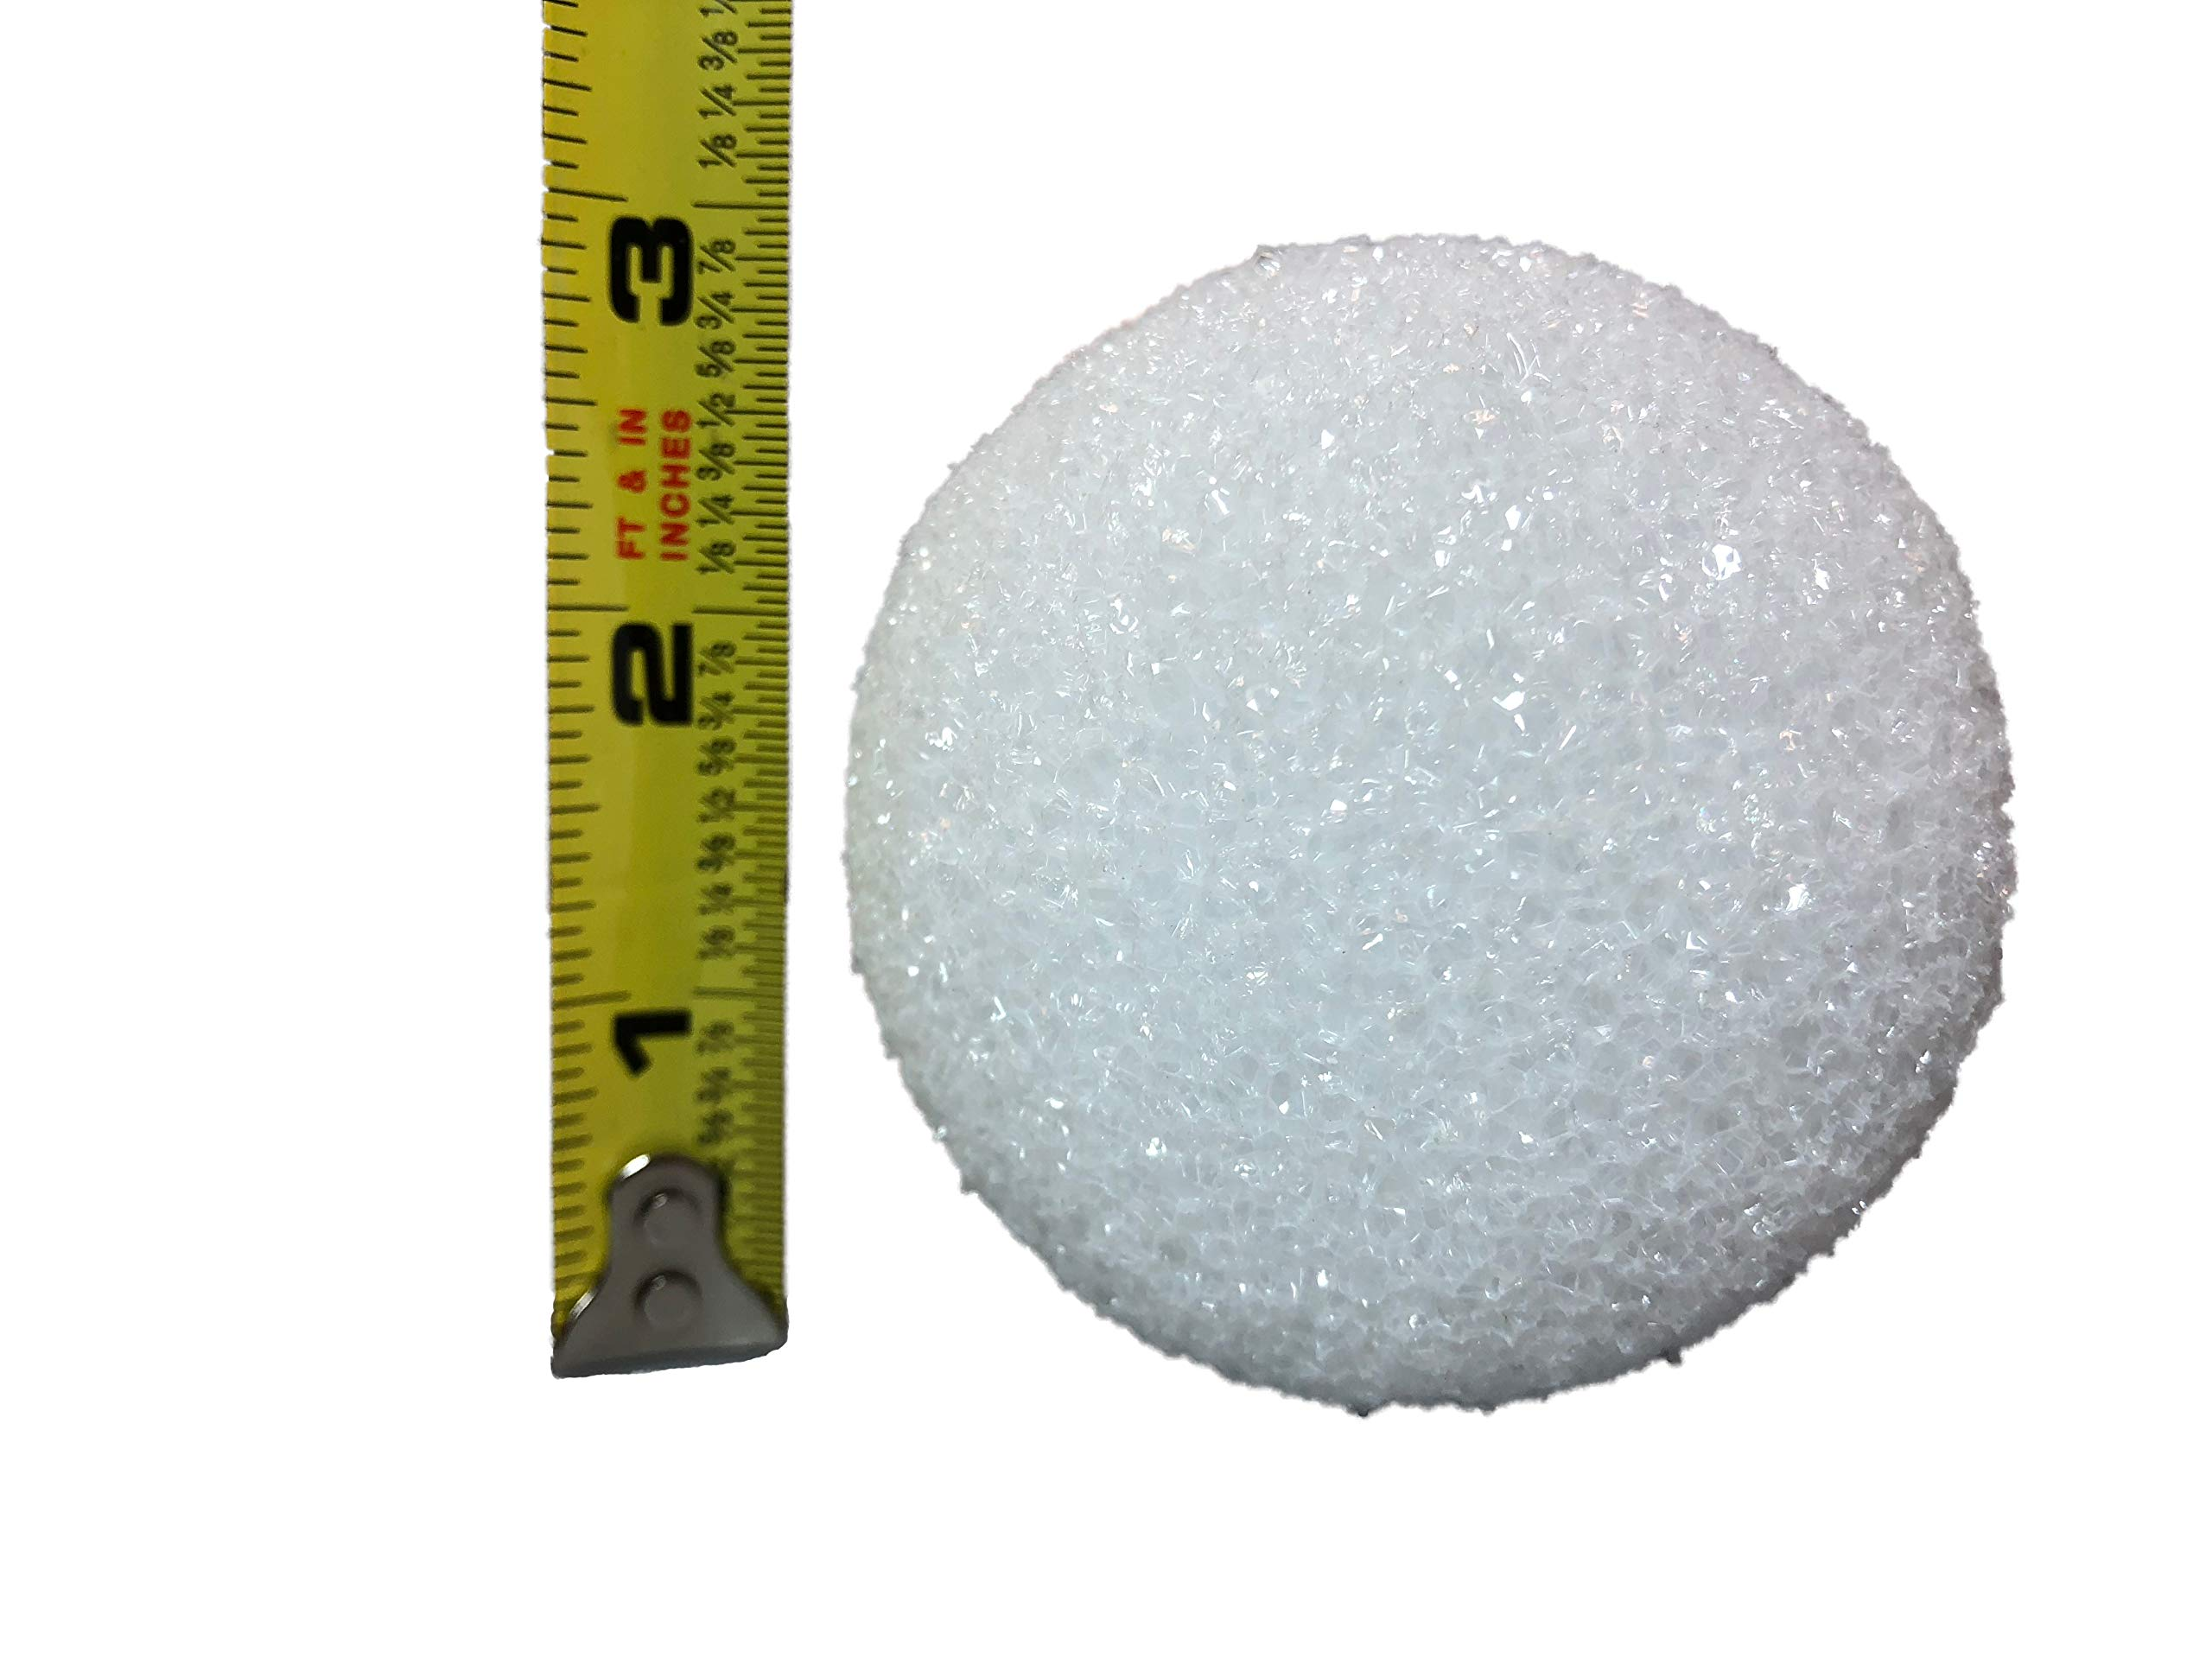 White Styrofoam Balls for Arts and Crafts (12 Balls) - by LACrafts (3 Inch)